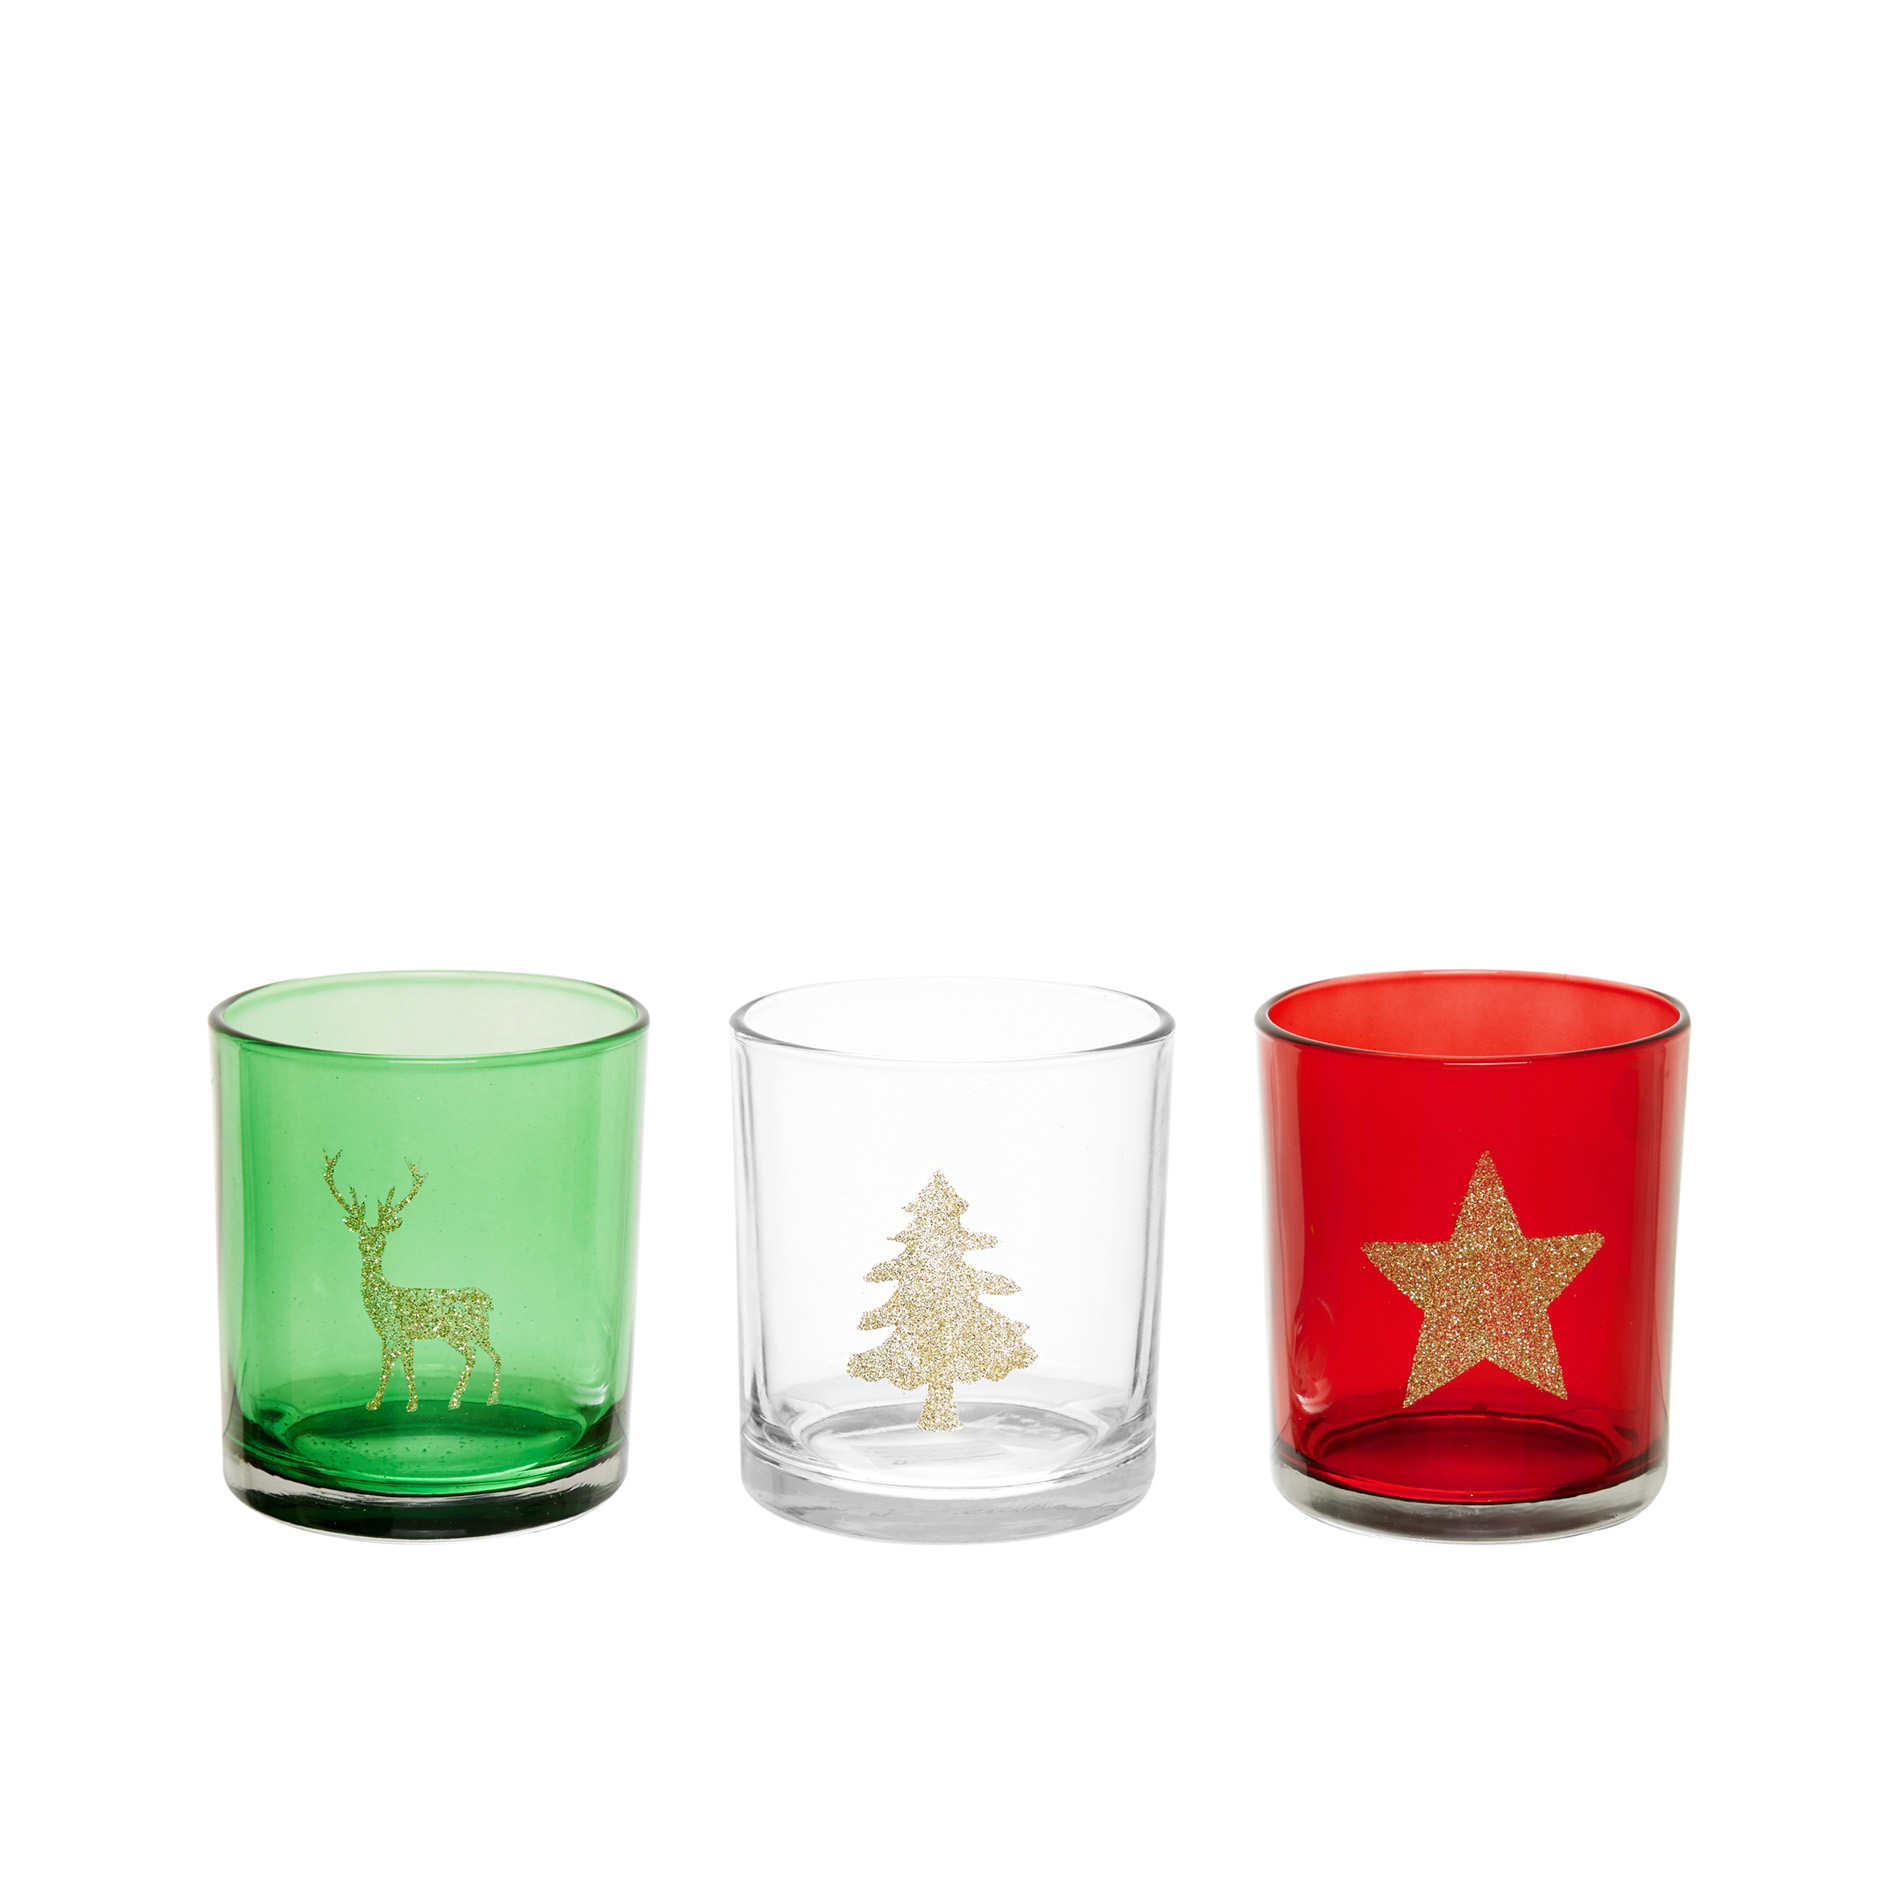 Glass Votive Candle Holder With Glitter Decoration Coincasa